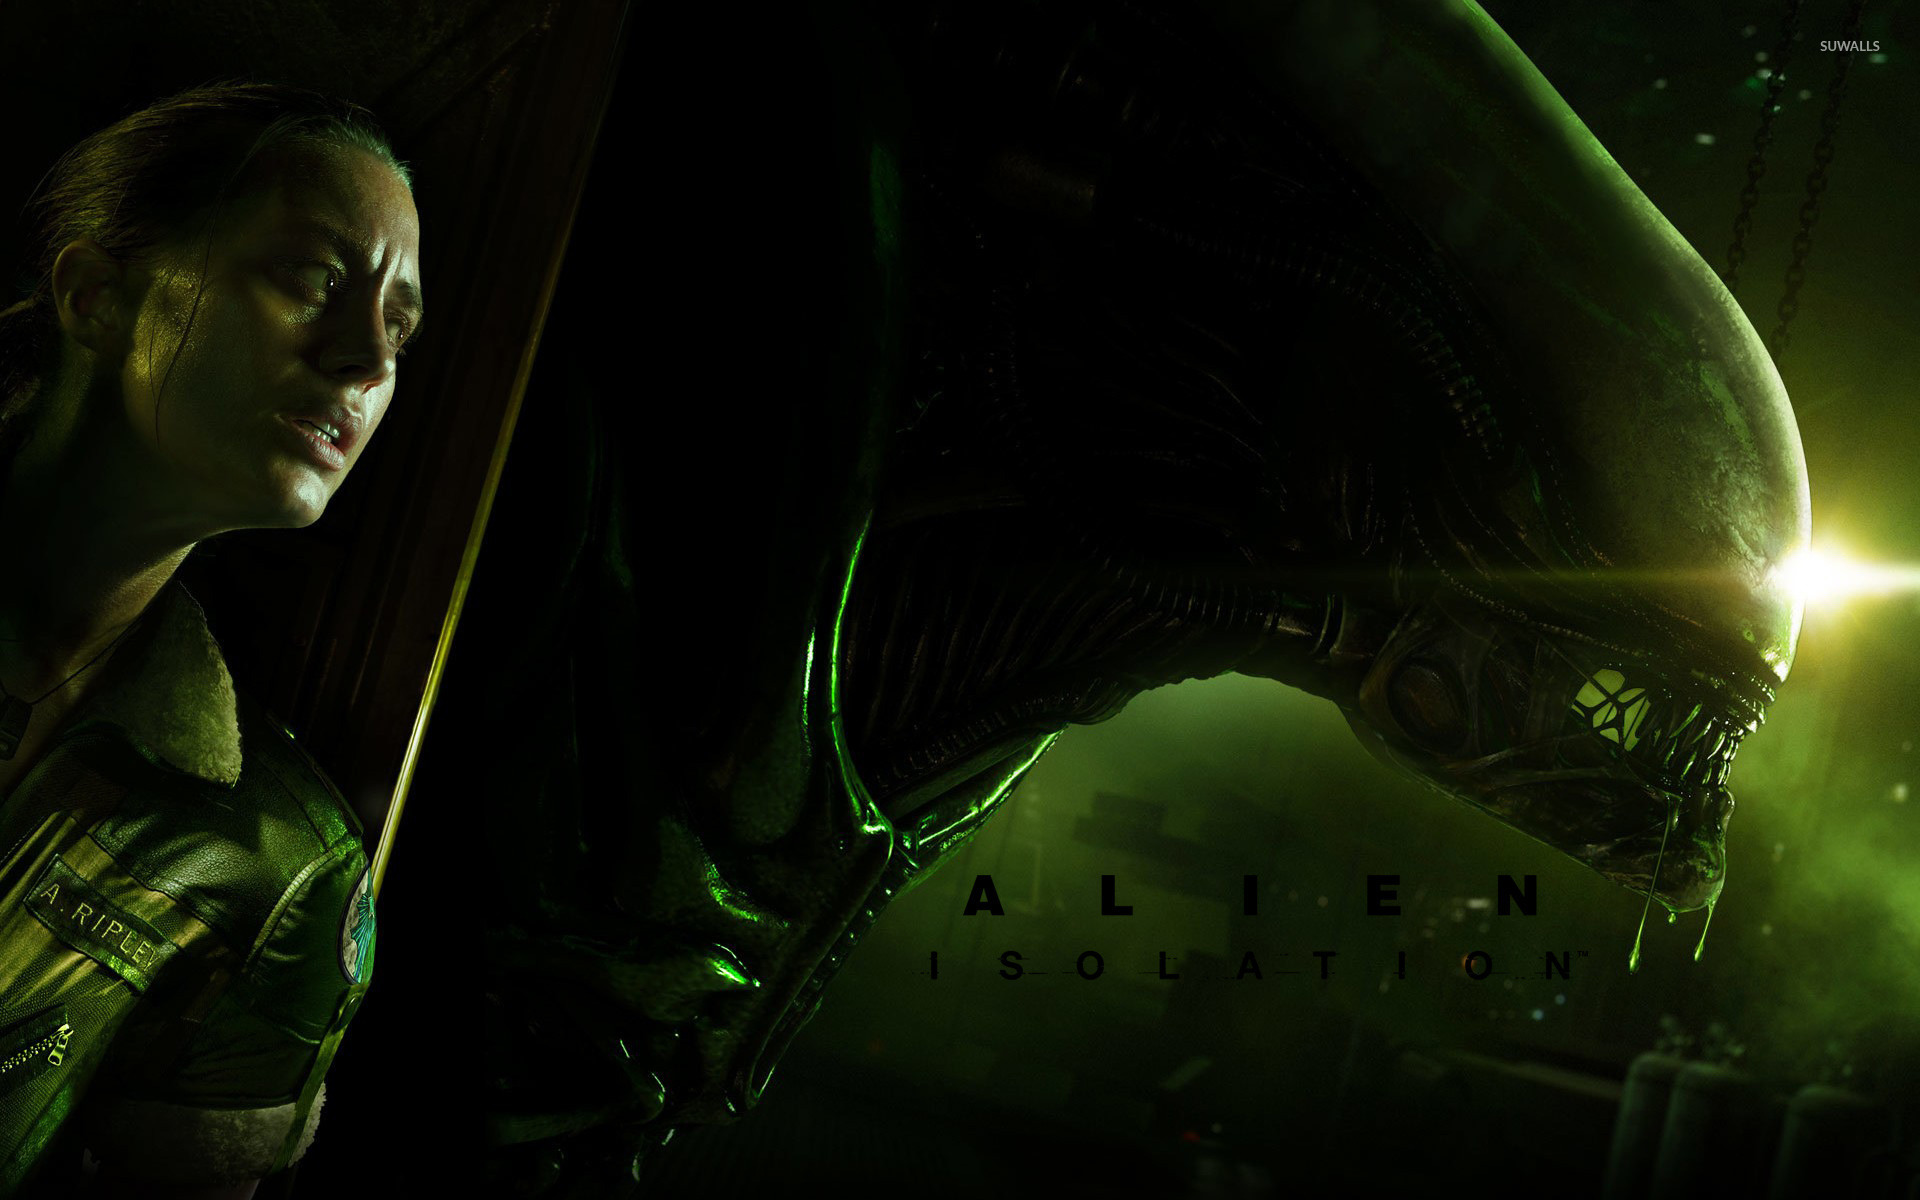 Alien Isolation 3 Wallpaper